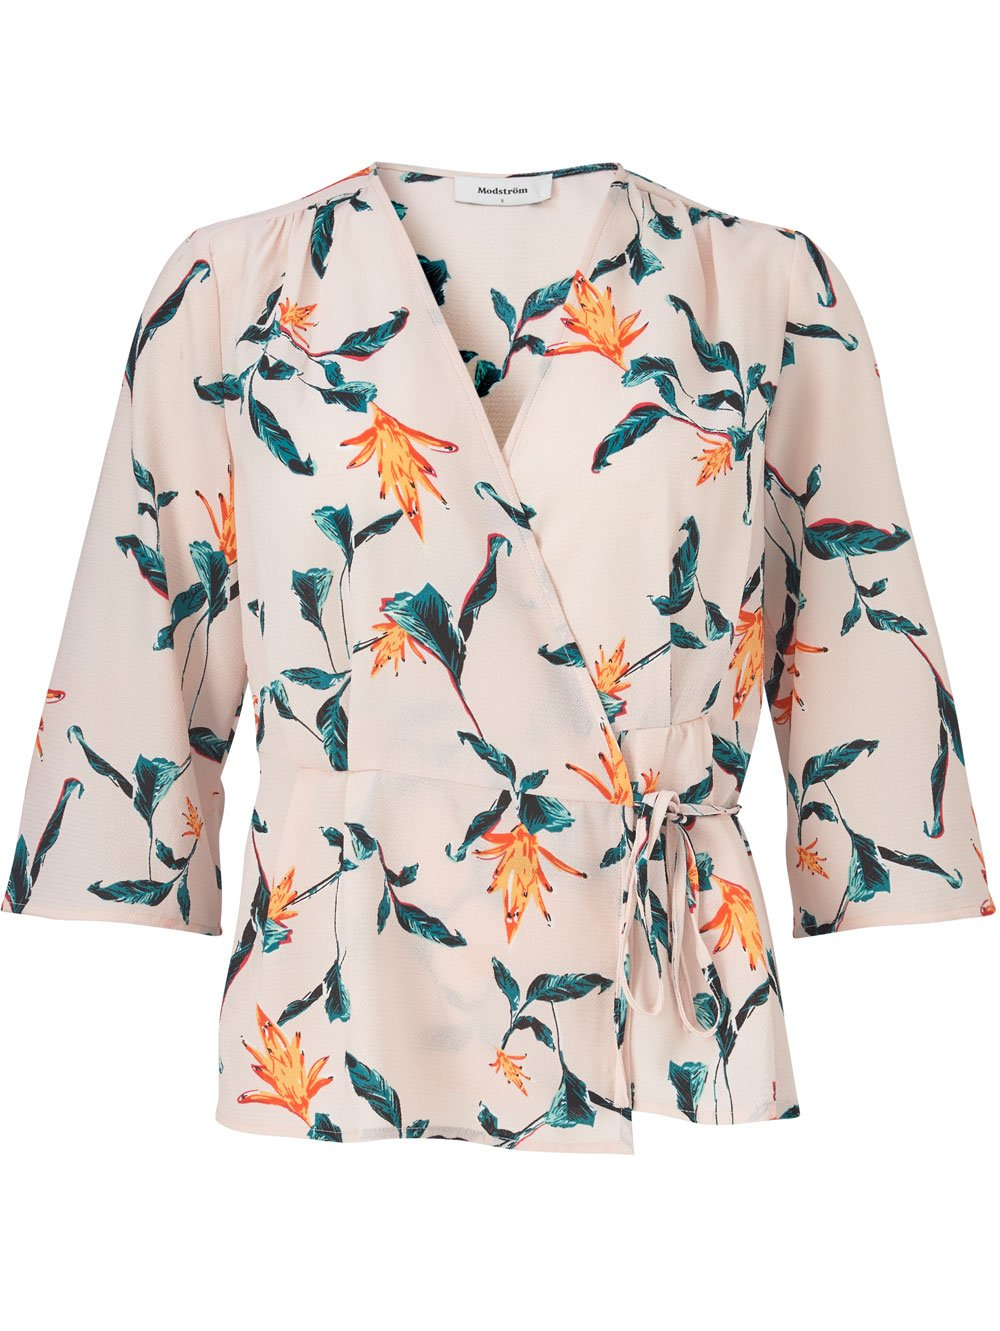 Genesis Print Top - Rose Tropical